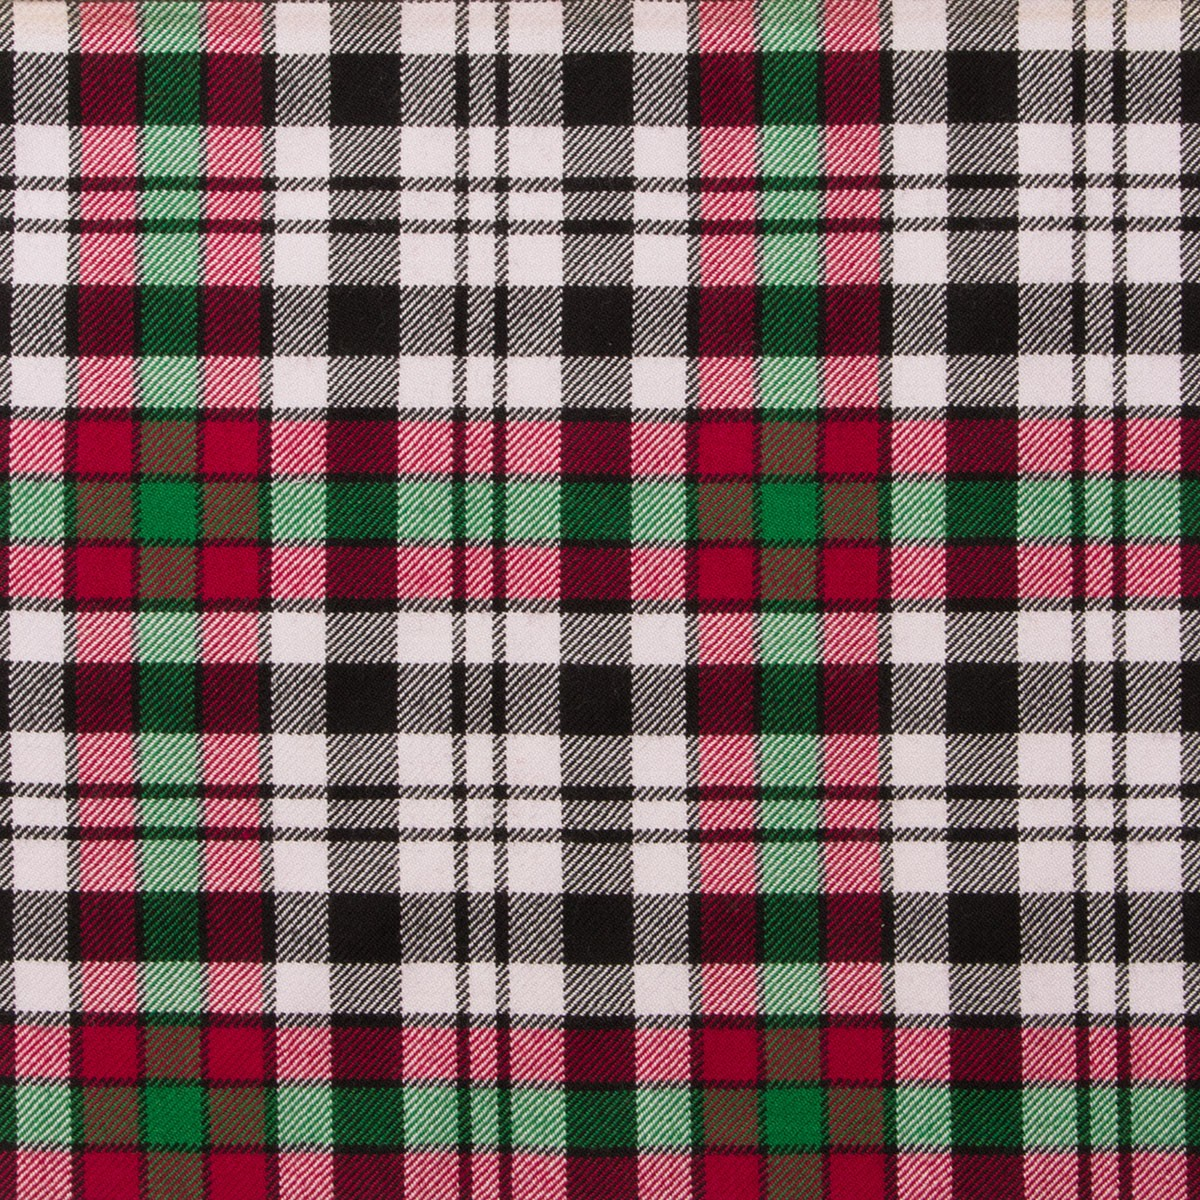 Borthwick Dress Tartan Fabric